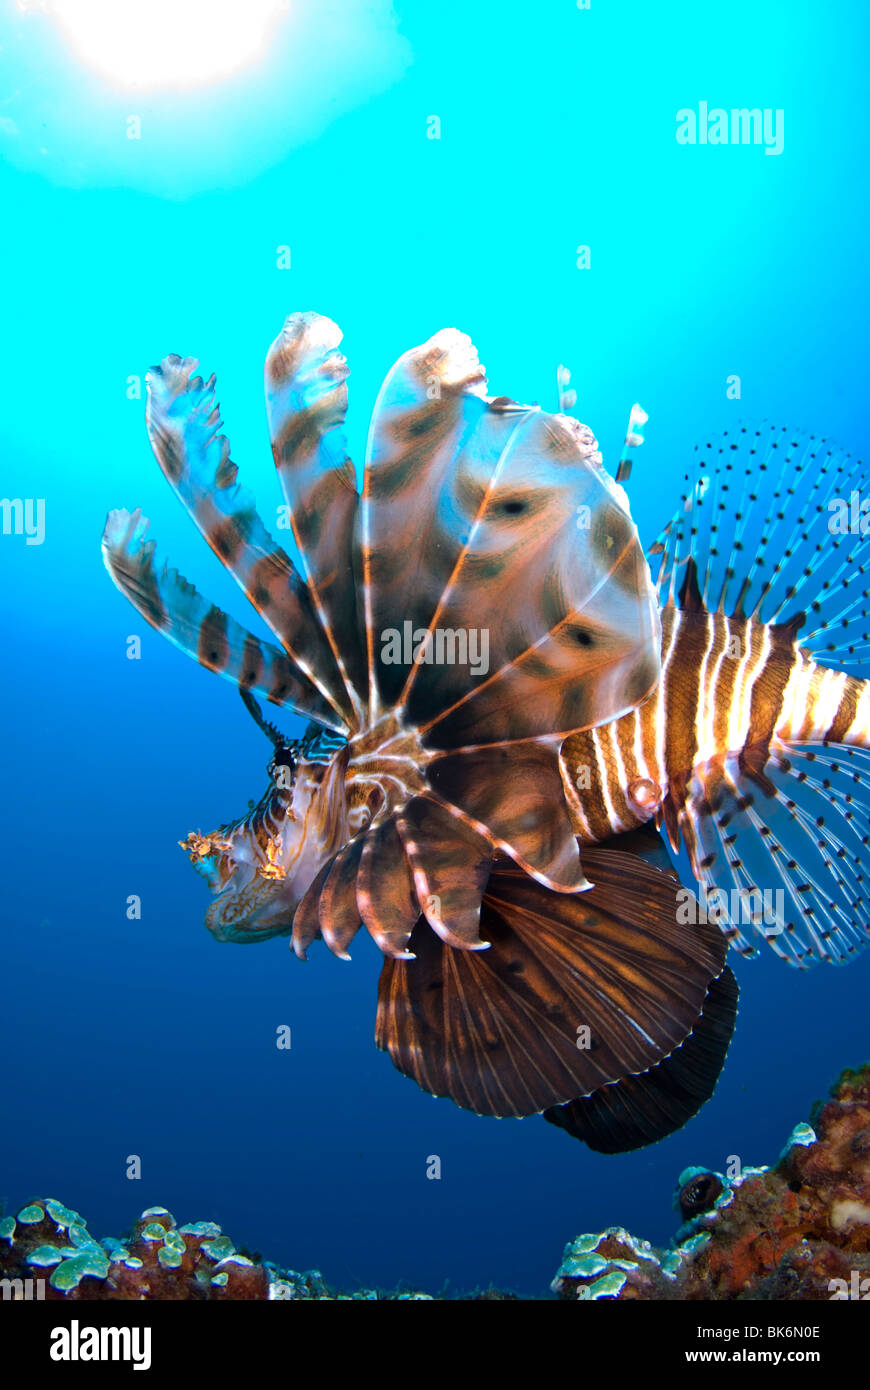 Lionfish, South Africa, Indian Ocean - Stock Image